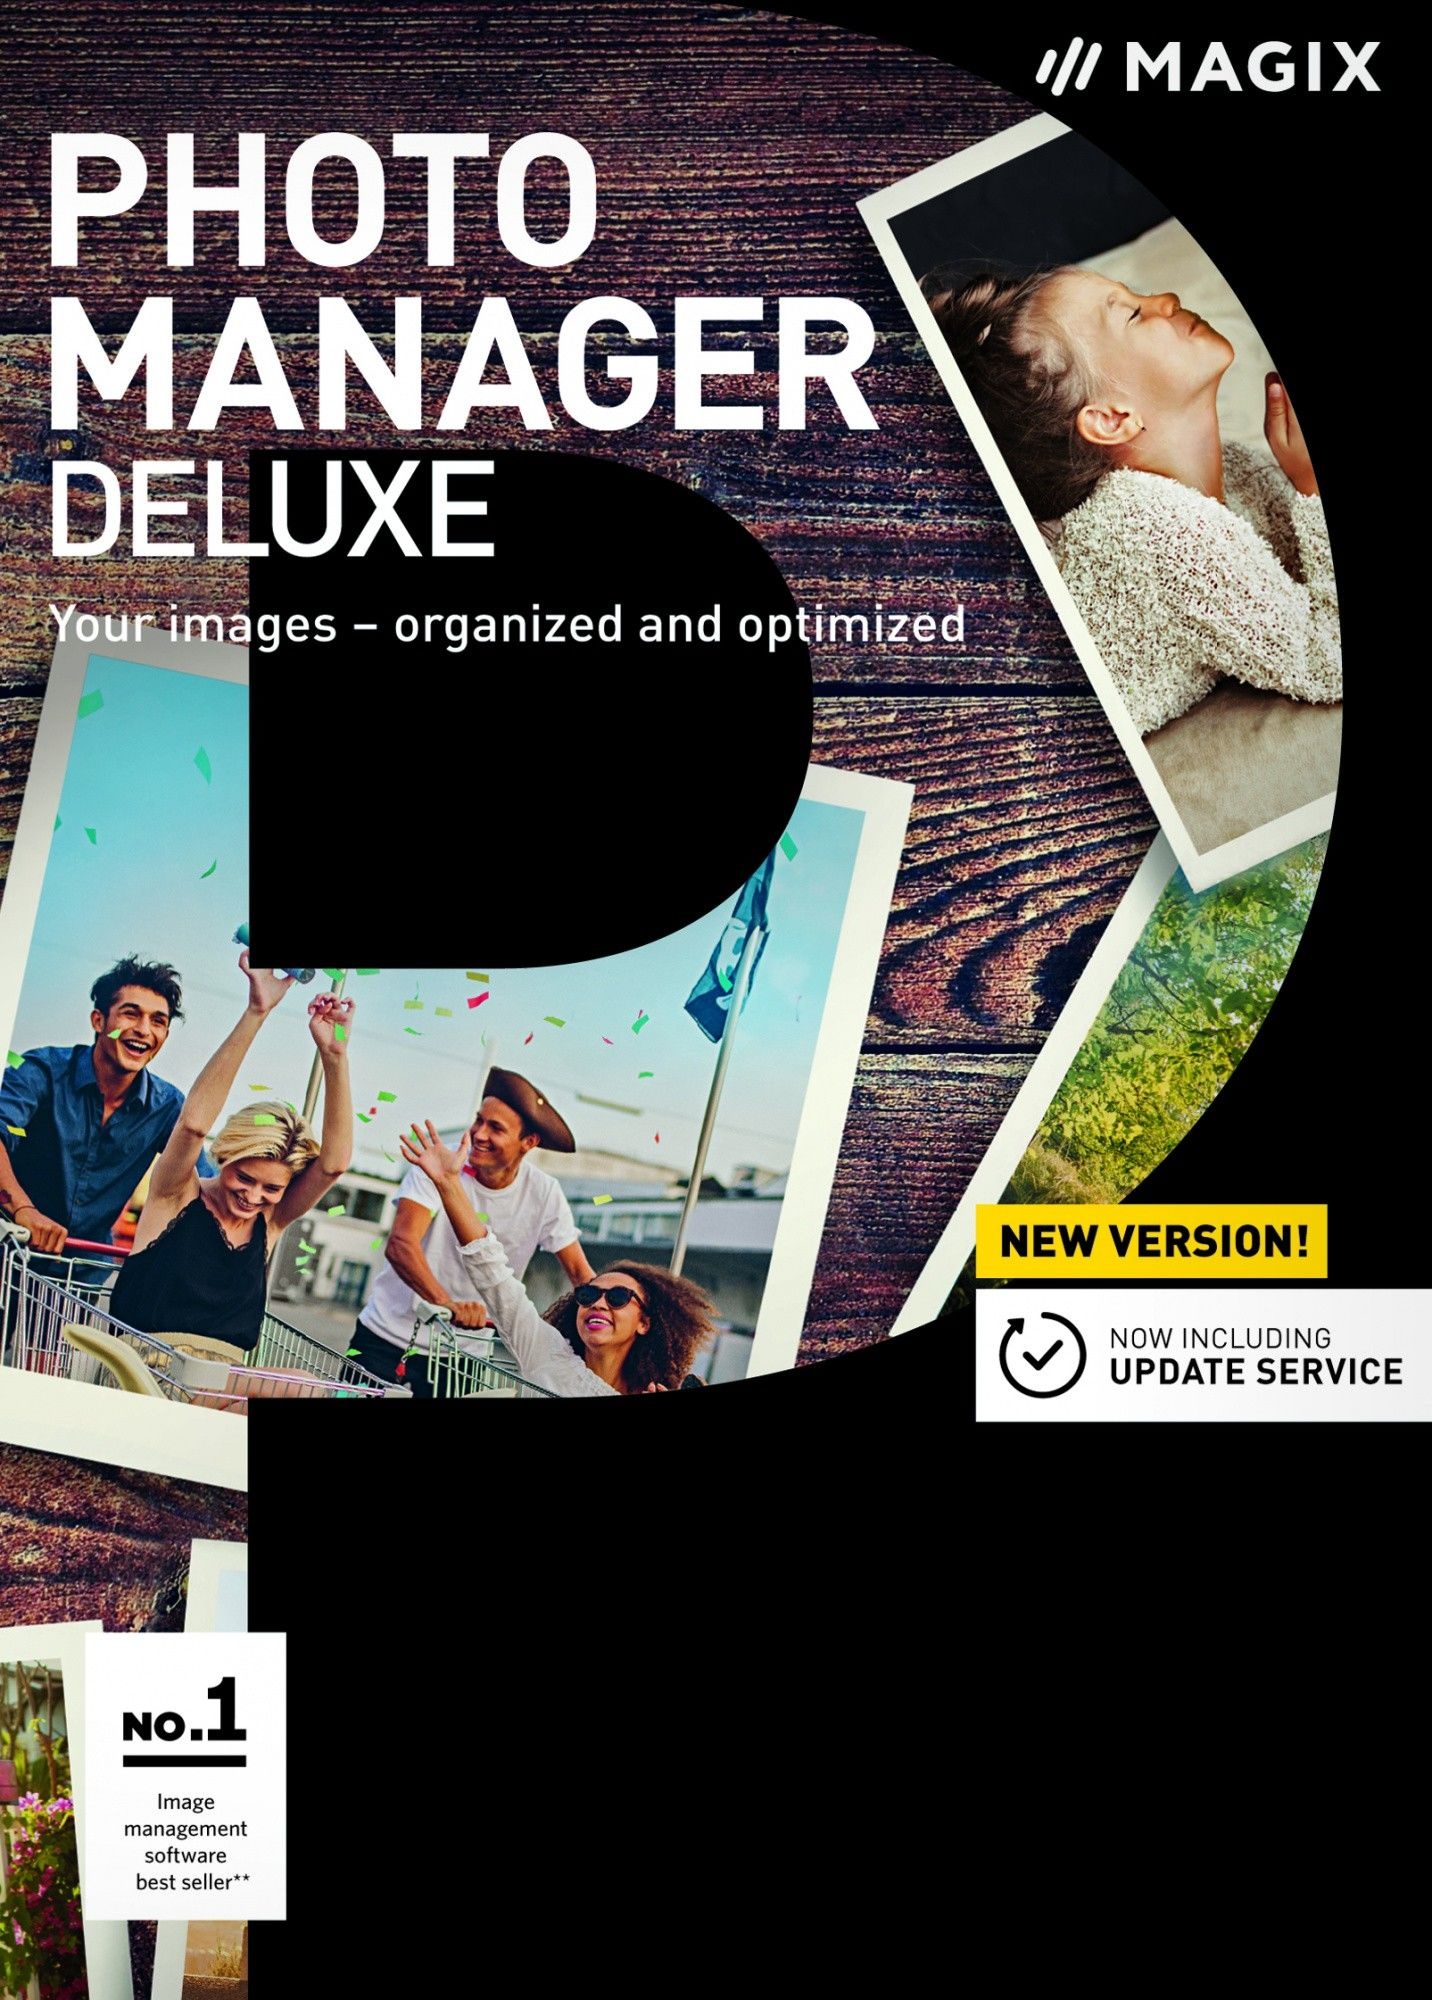 MAGIX Photo Manager Deluxe - ESD - Certyfikaty Rzetelna Firma i Adobe Gold Reseller